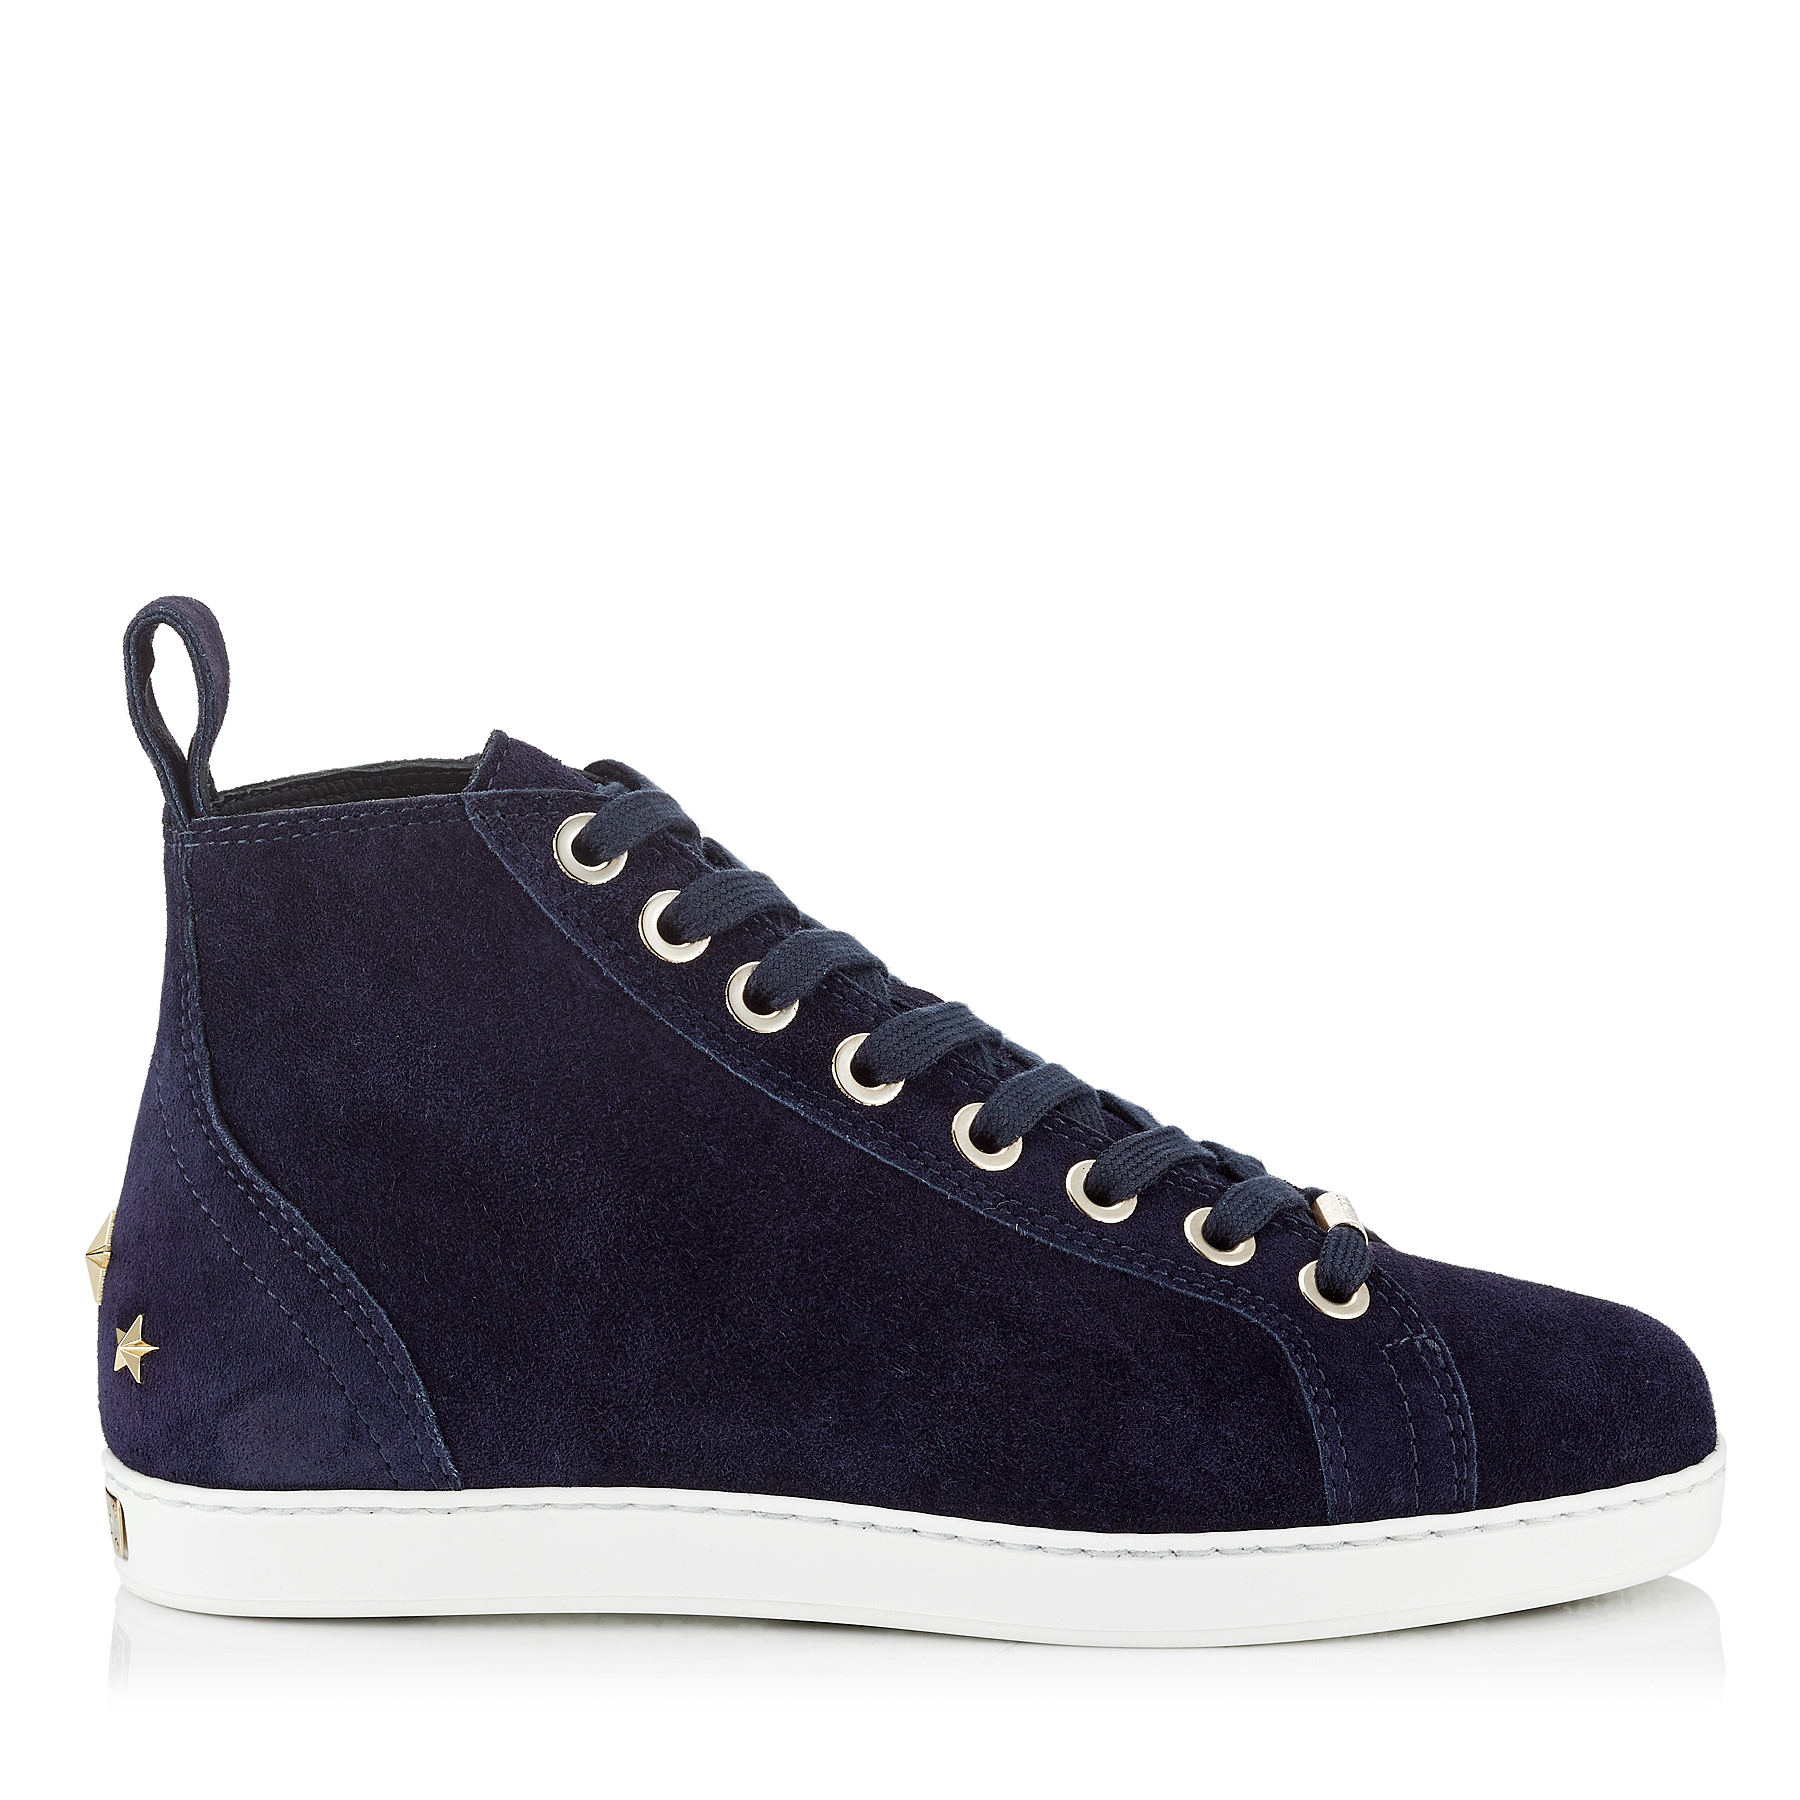 COLT/F Navy Velvet Suede High Top Trainers by Jimmy Choo